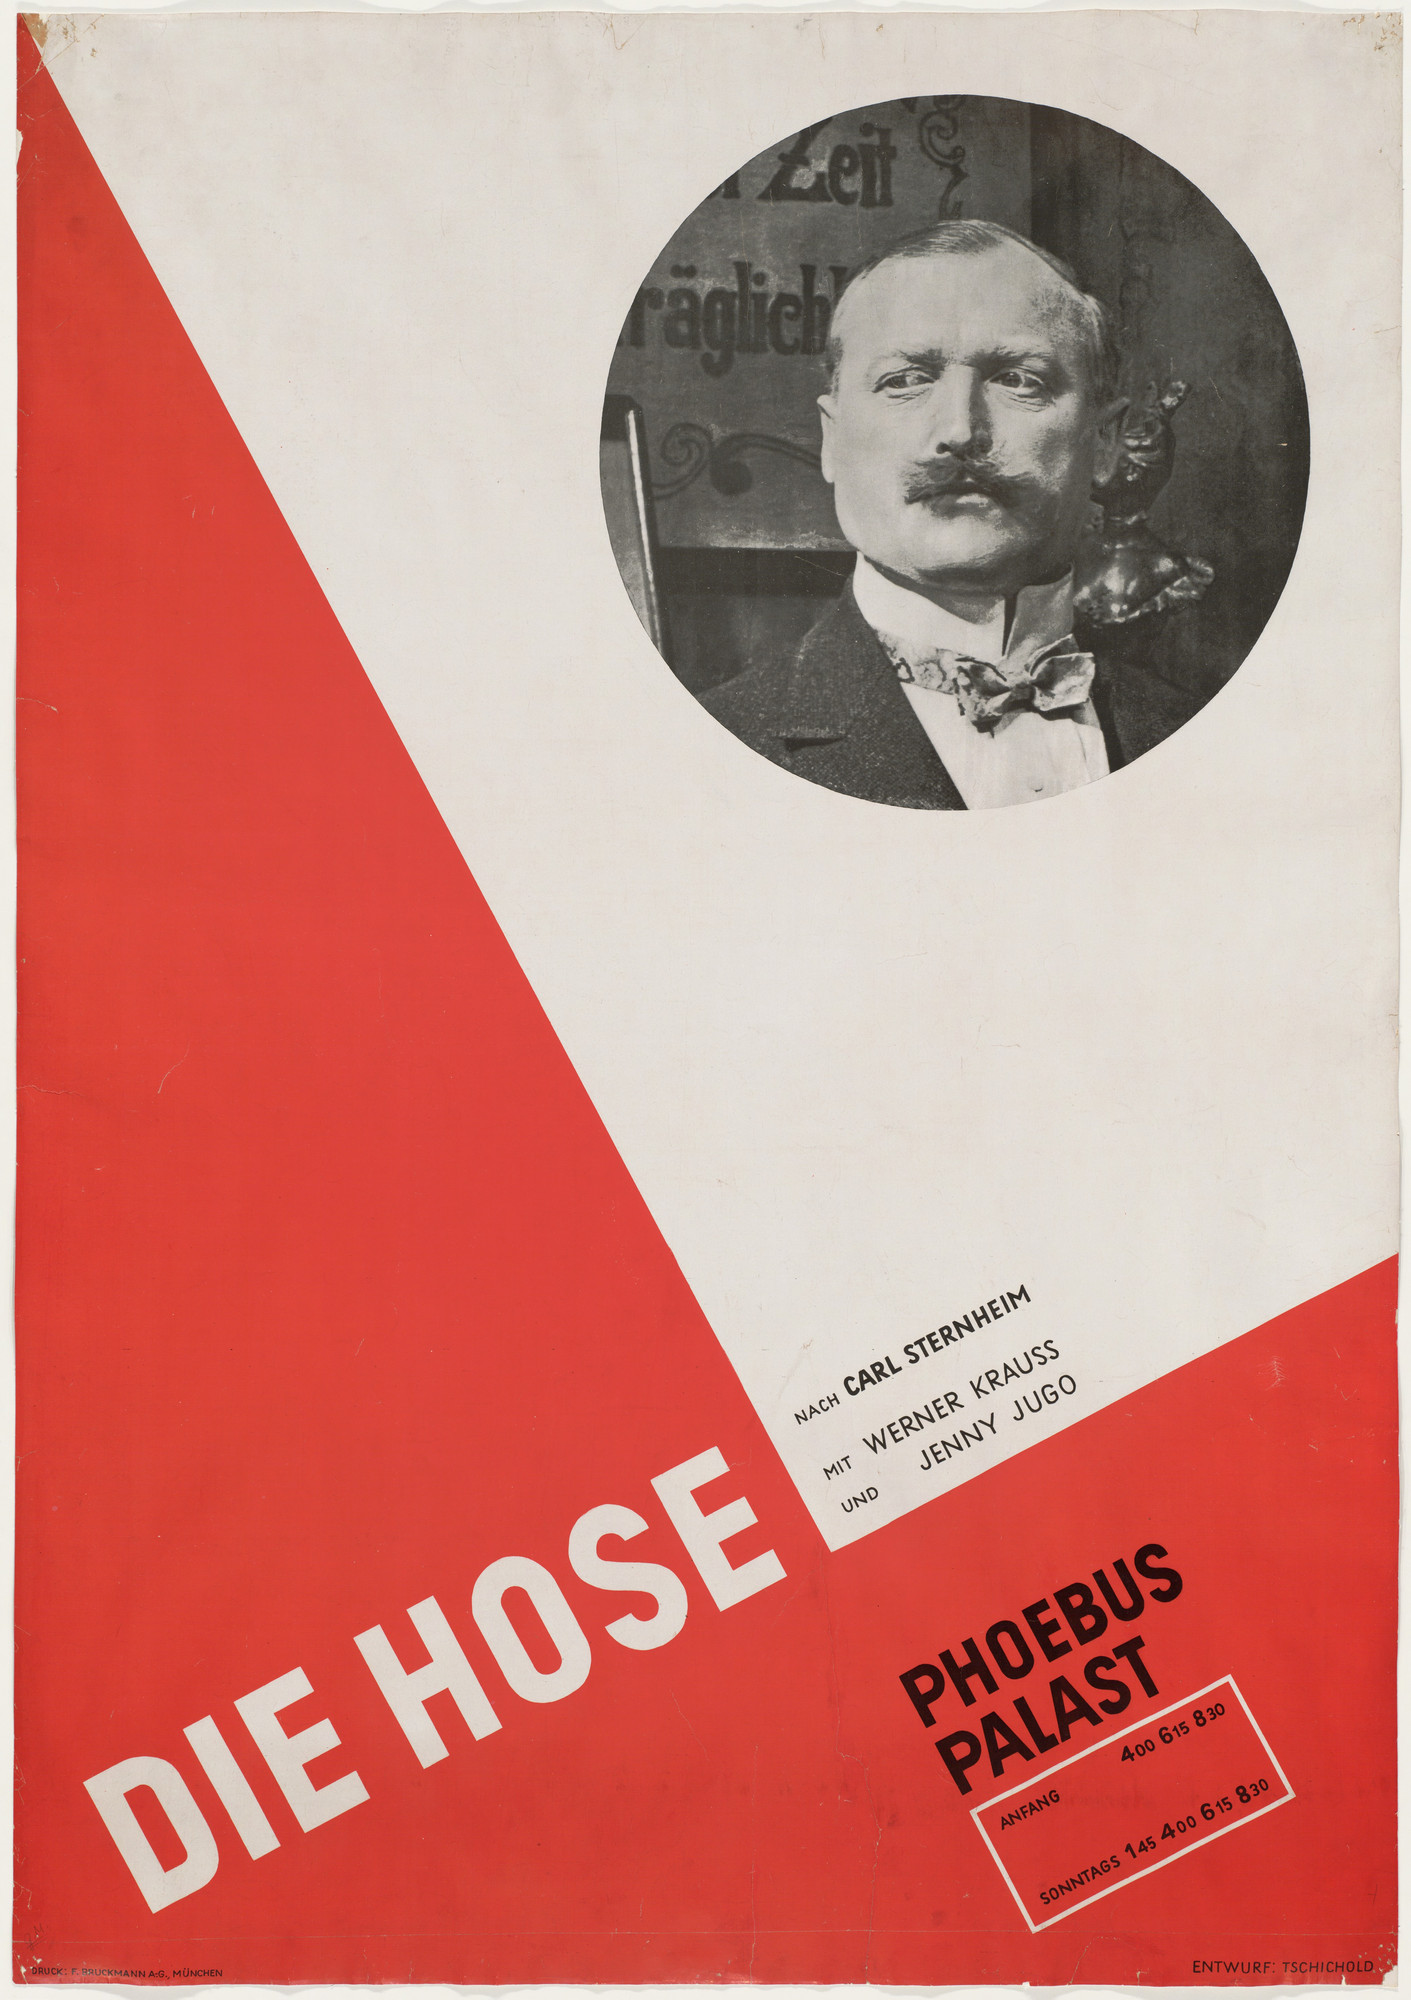 Jan Tschichold. Die Hose (the Trousers) at Phoebus Palast (Poster for the film directed by Hans Behrendt, based on the play by Carl Sternheim). 1927